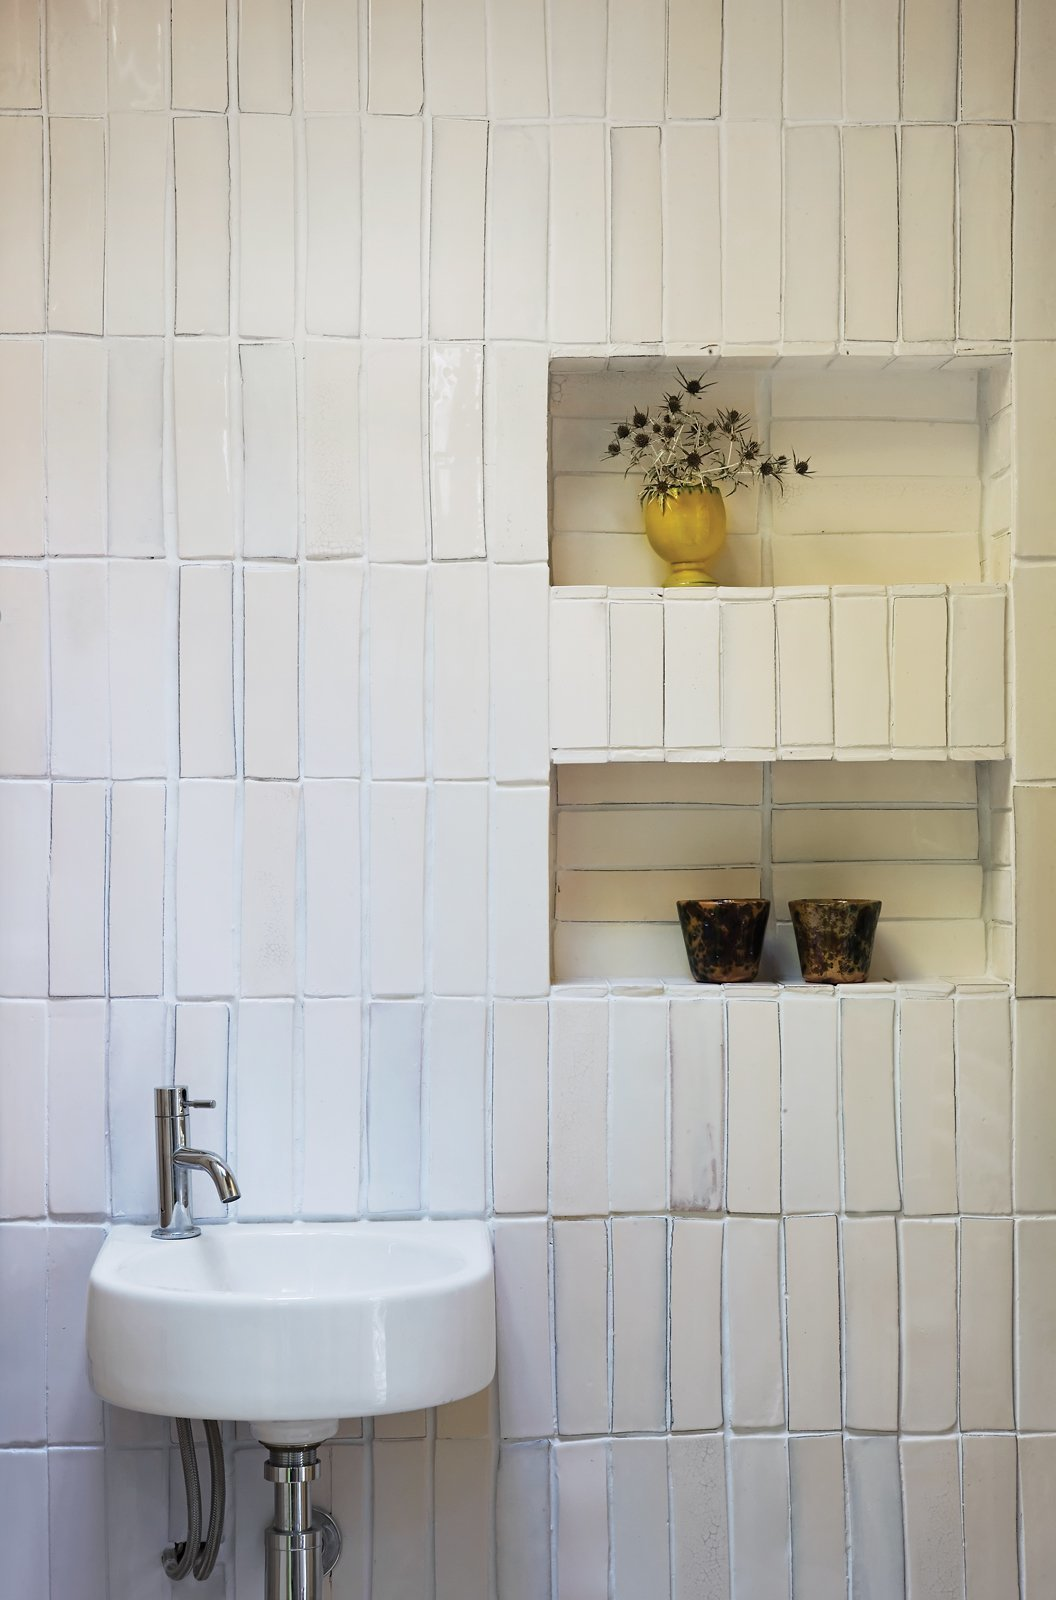 If you don't have to have cabinetry installed or shelves drilled onto your bathroom walls, one good idea is to create recessed wall shelves for storage. This will help conserve floor space. You can even create recessed wall in corners.